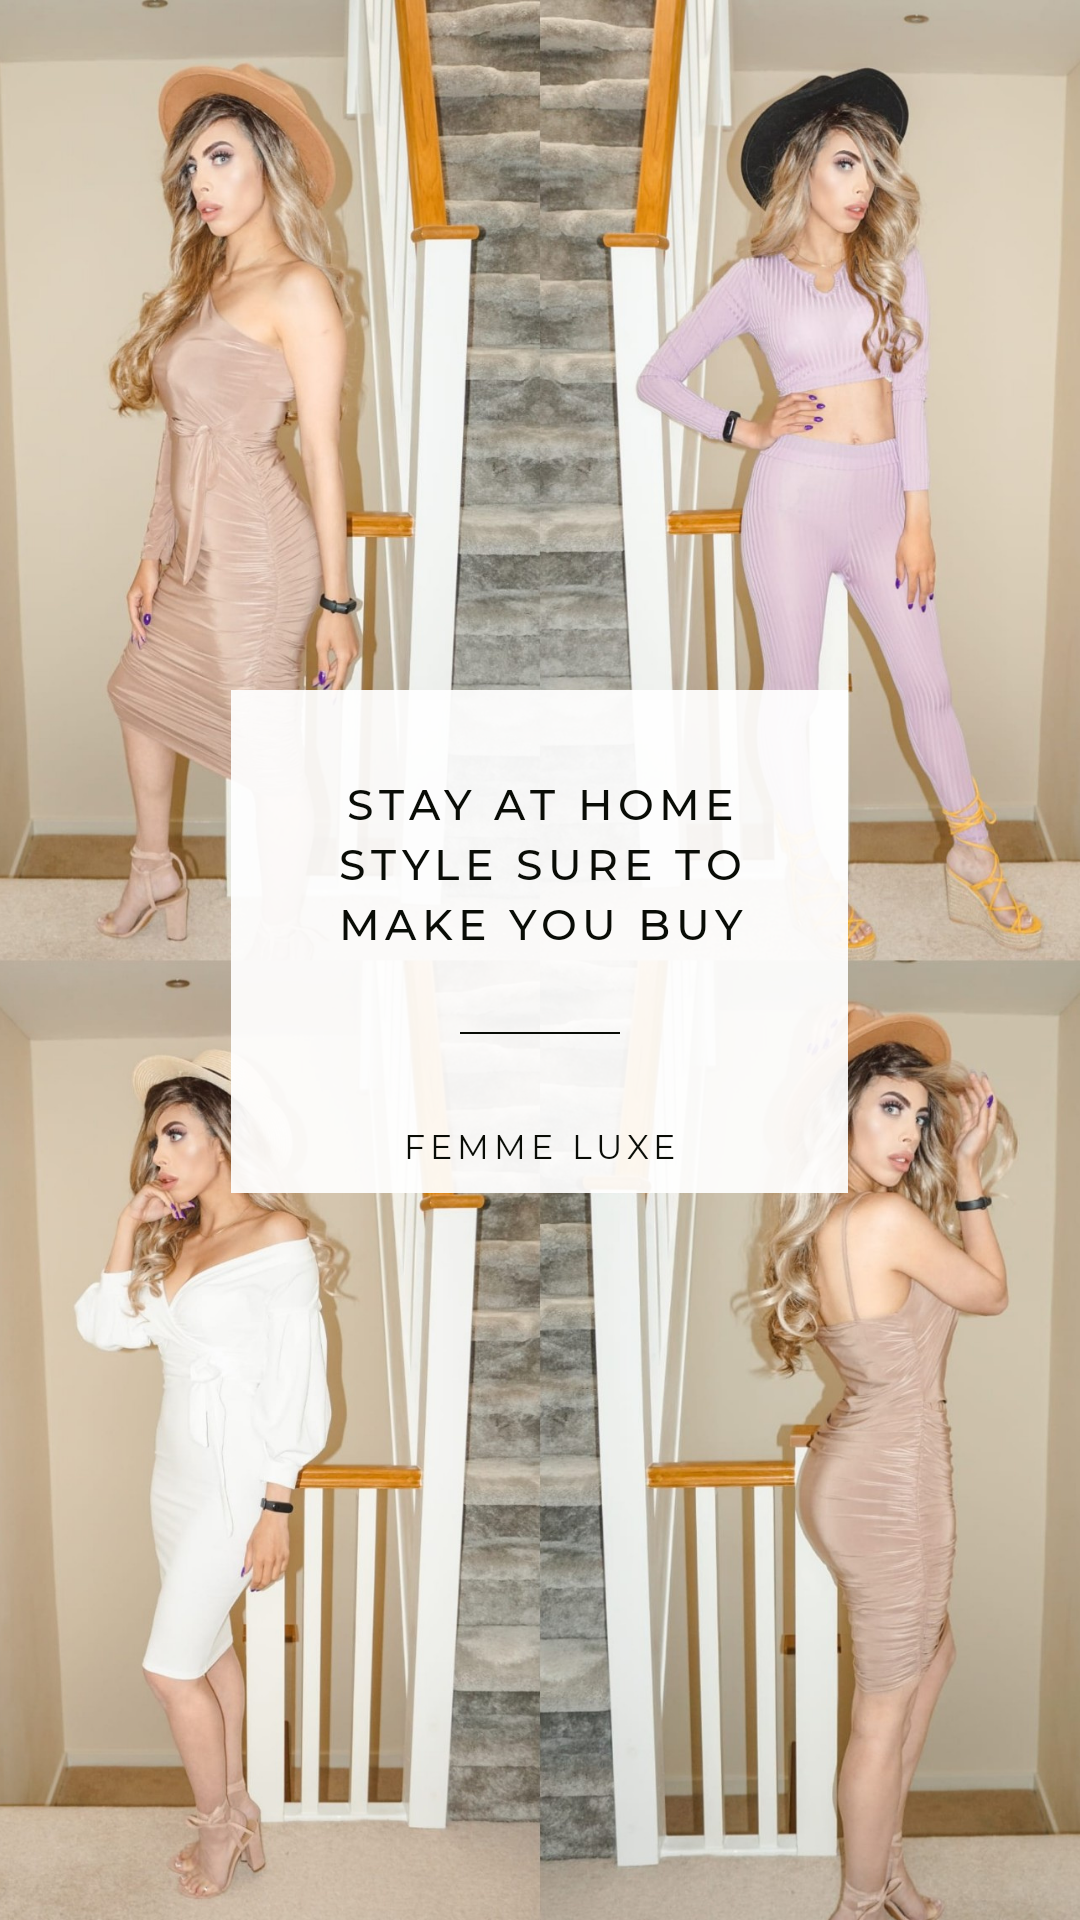 STAY AT HOME STYLE SURE TO MAKE YOU BUY